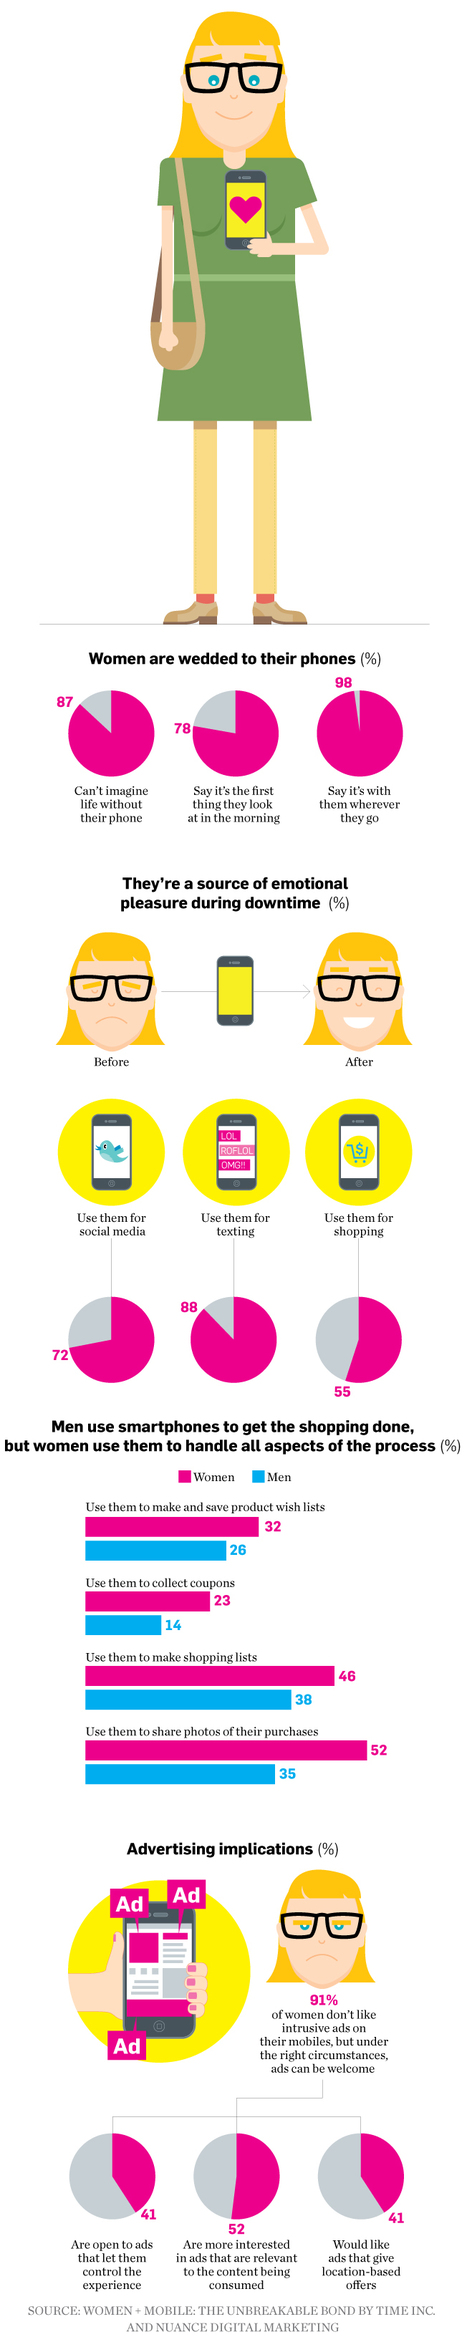 A Look at Women and Their Relationship With Mobile Phones | Consumer Behavior in Digital Environments | Scoop.it